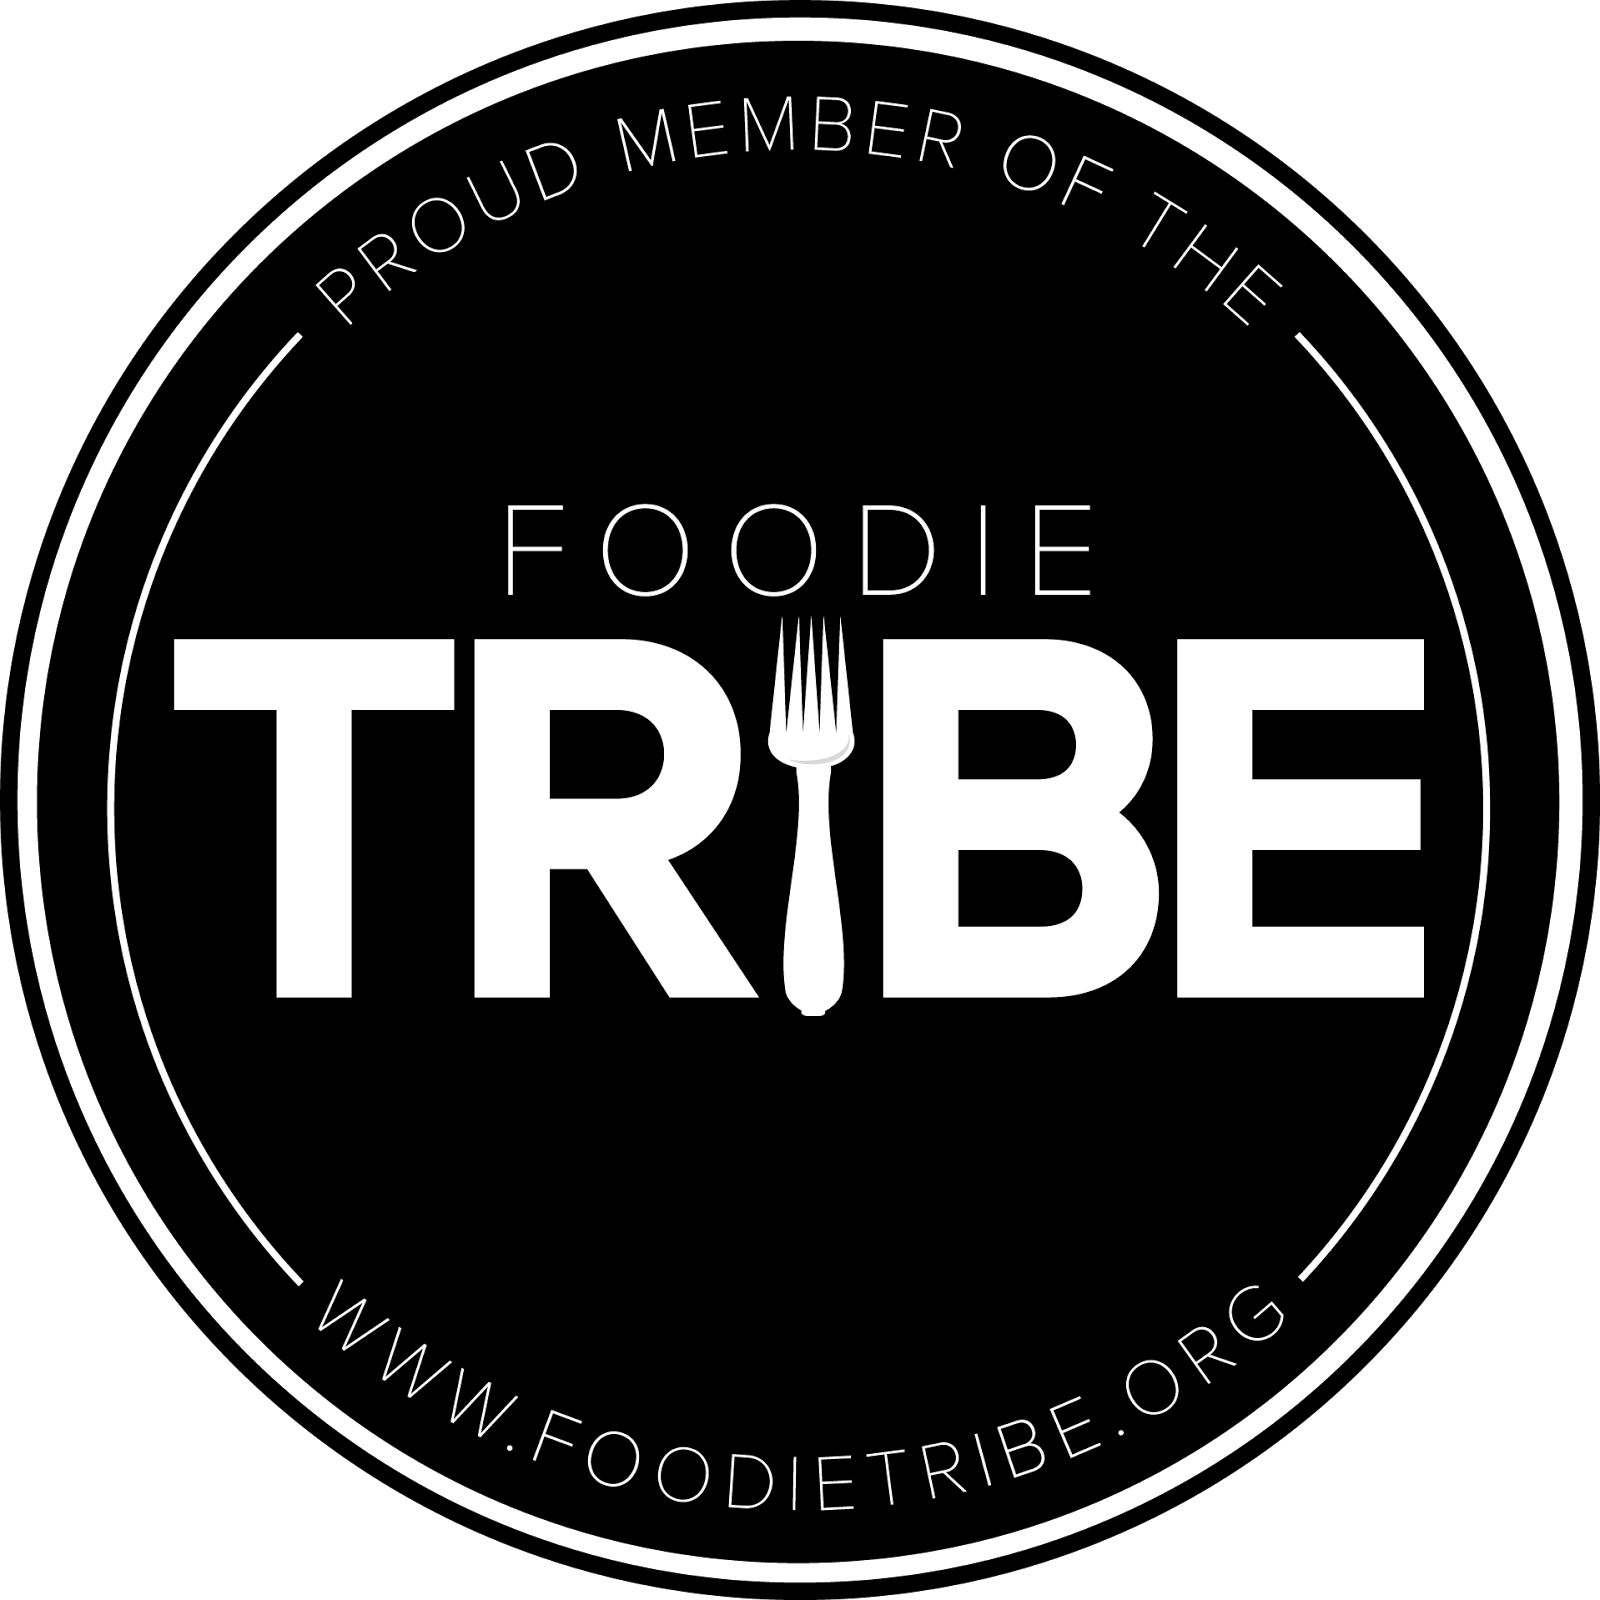 FoodieTribe Member